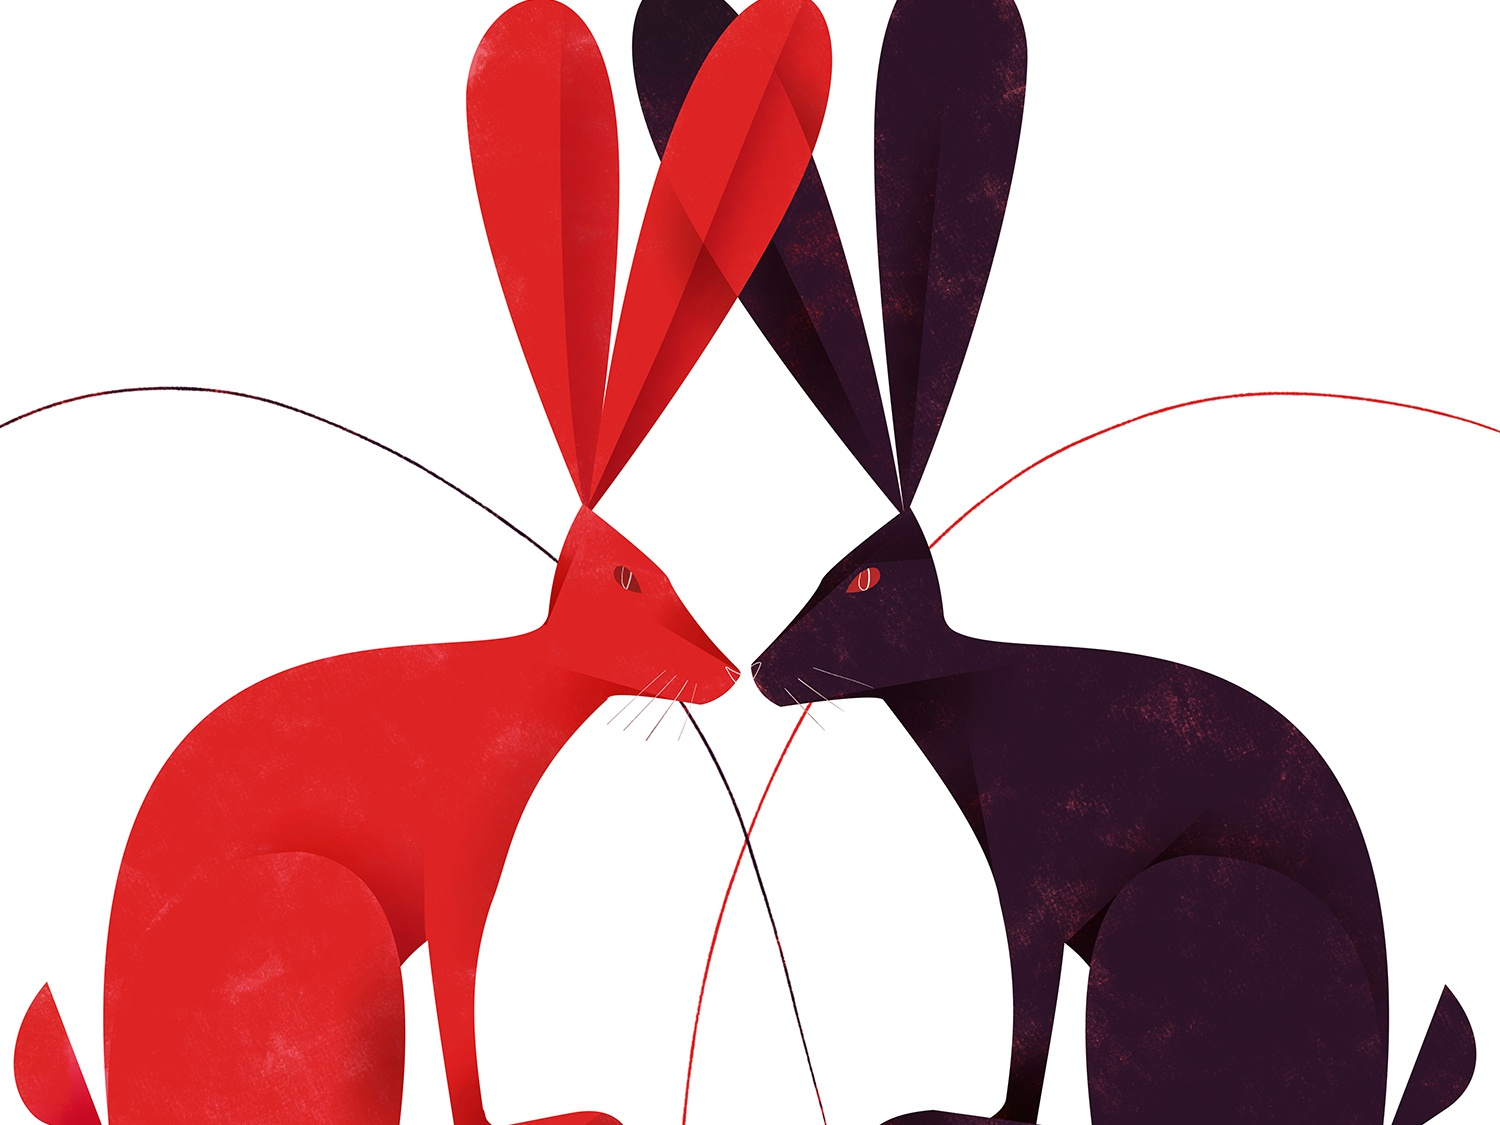 Hare We Go In Black & Red lovers romance saint valentines animal rabbit hares illustration editorial